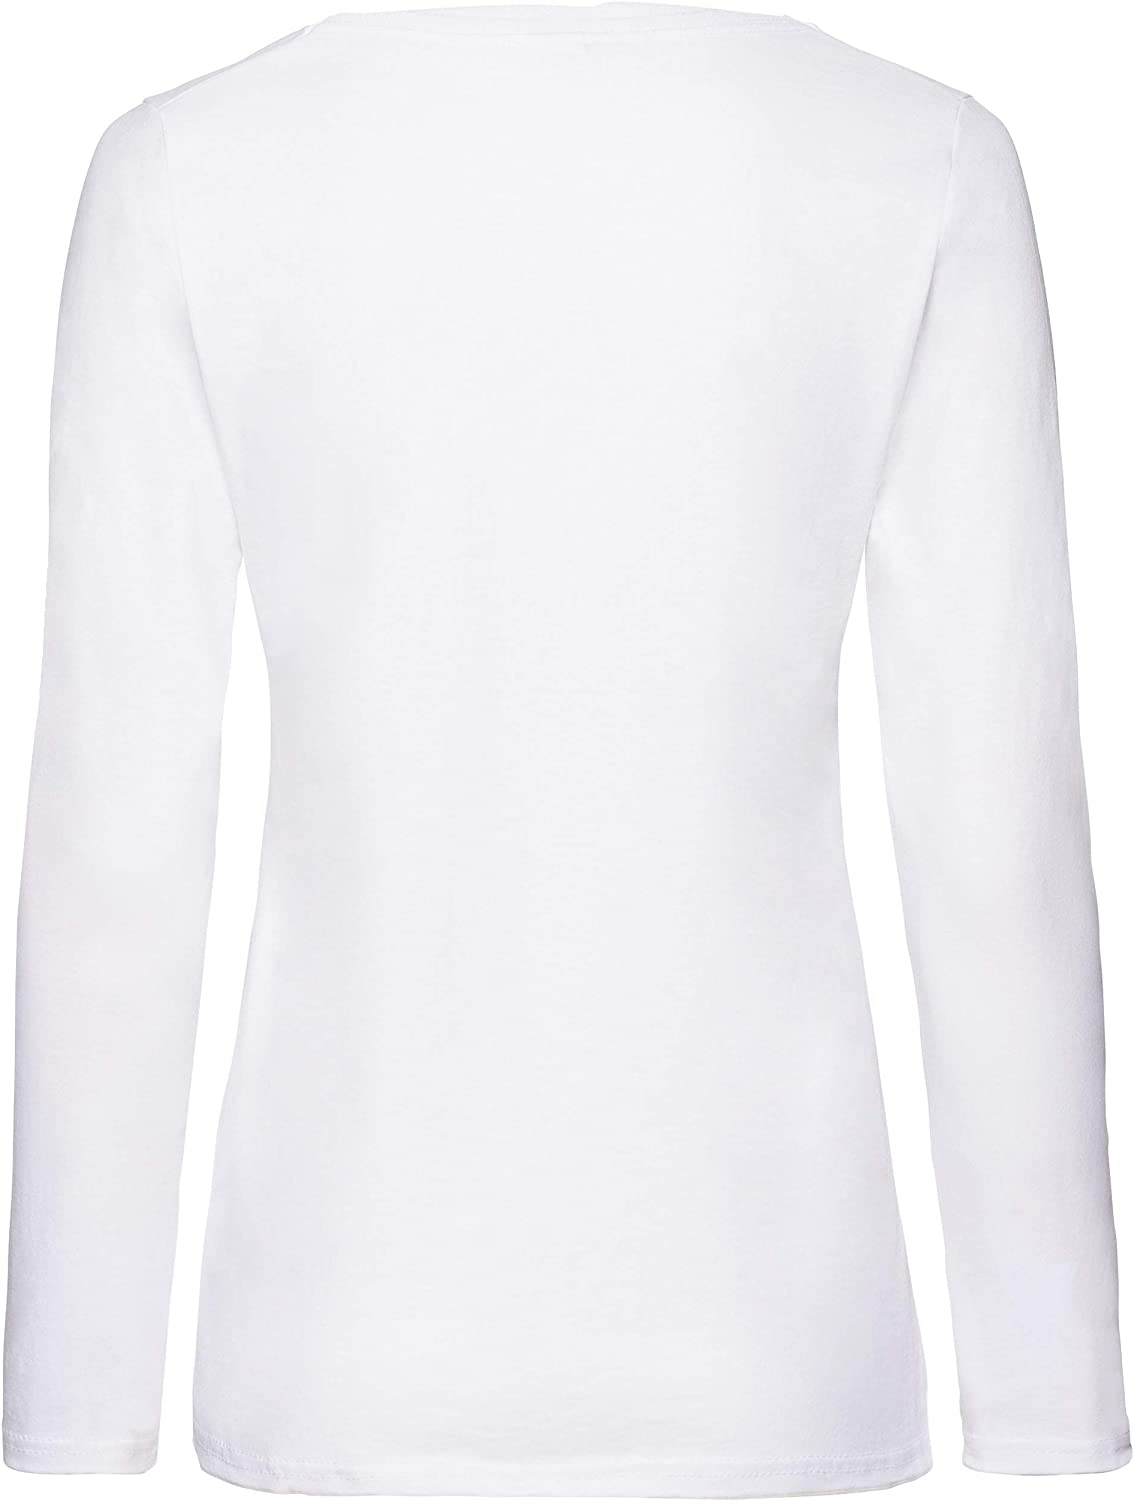 Fruit of the Loom Long-Sleeve T-Shirt in and Sizes White - White